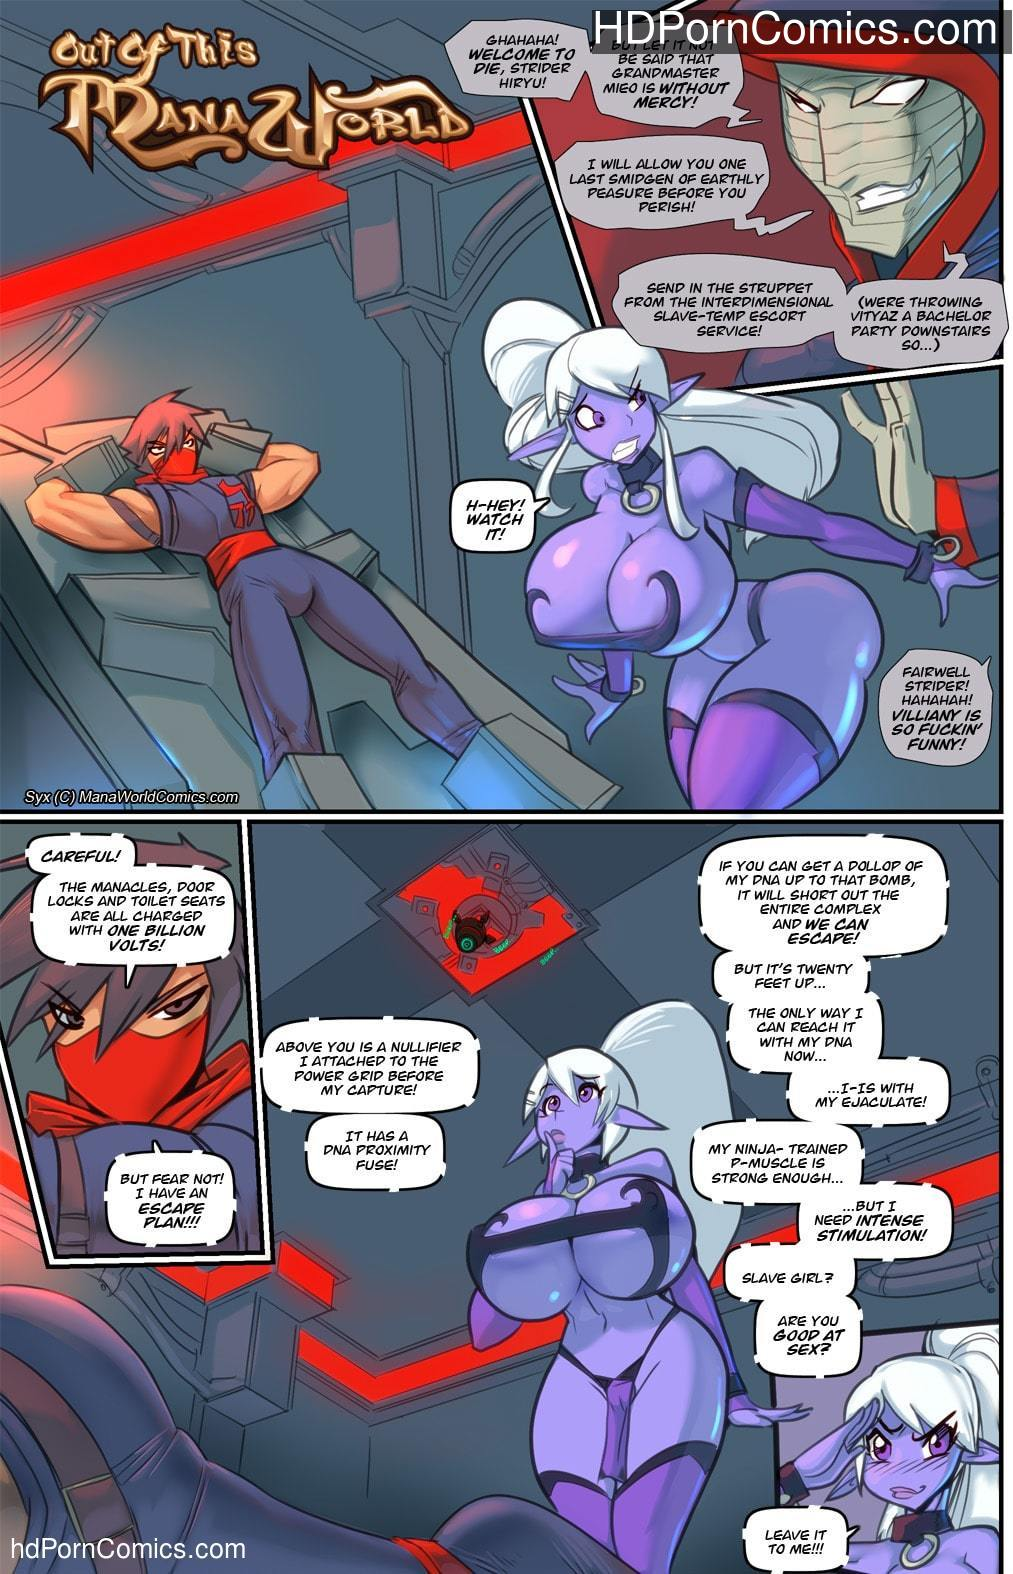 Xxx comics-ManaWorld- Out of this free Porn Comic